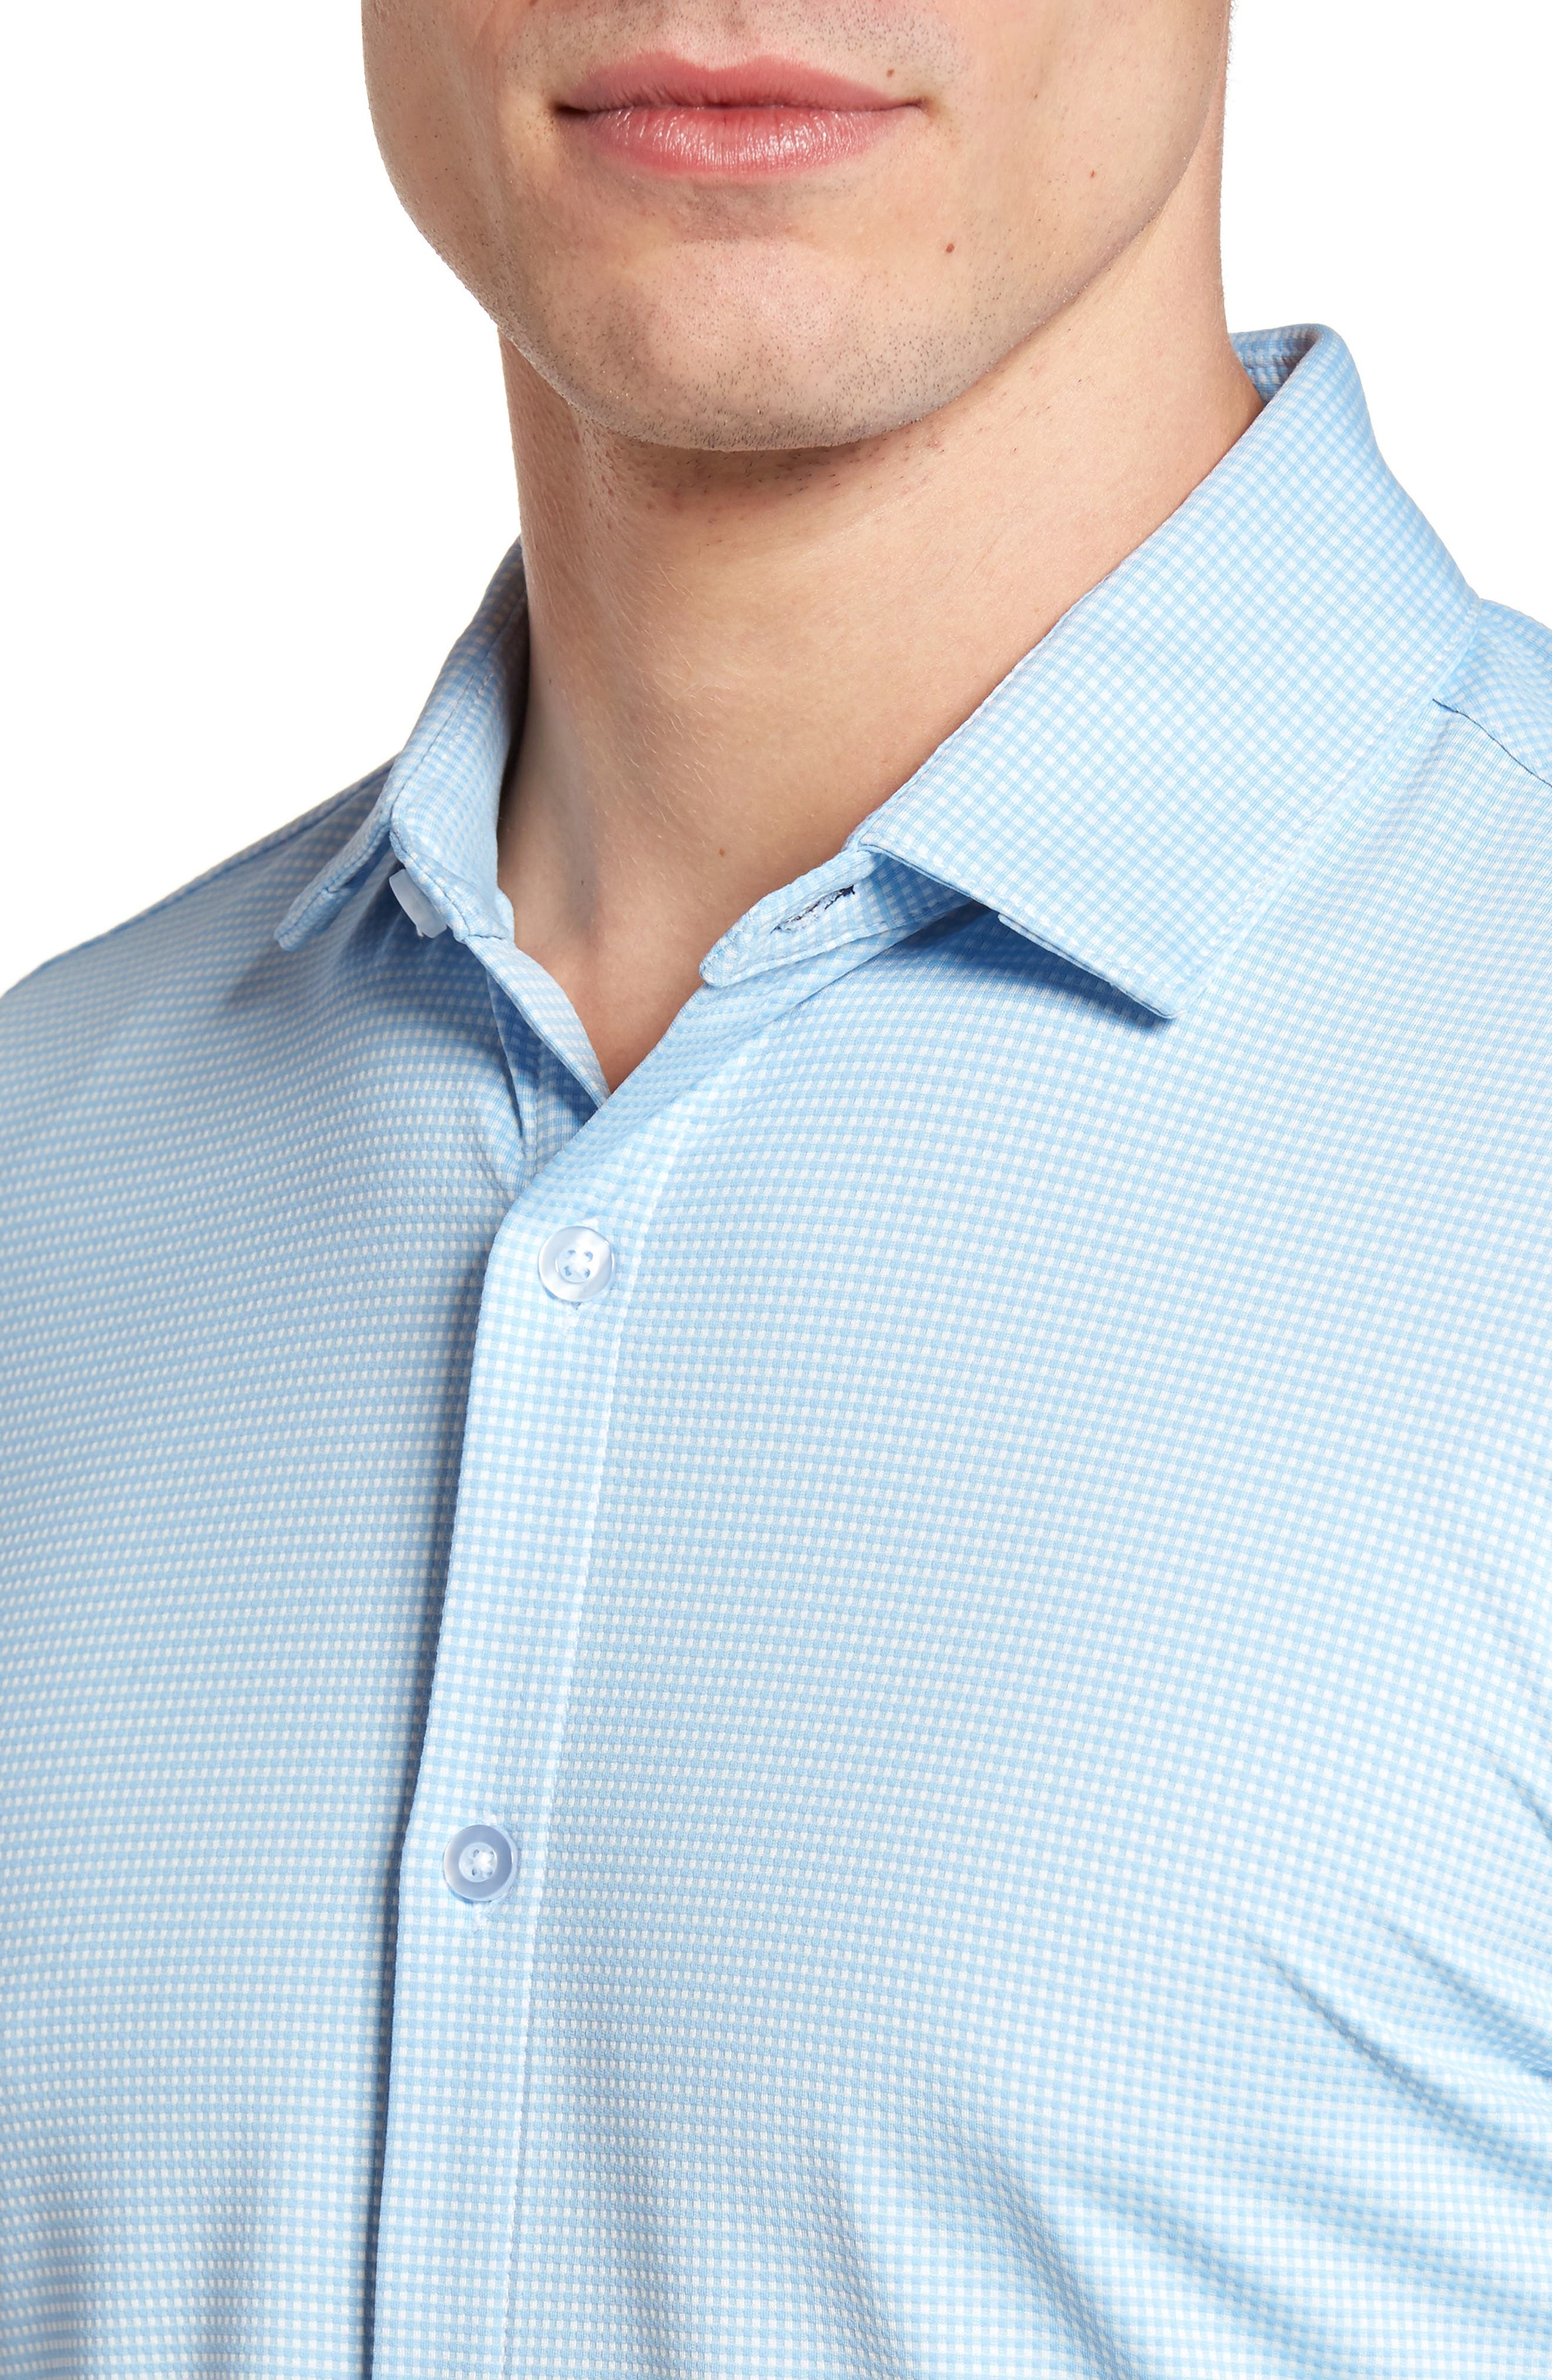 Whitman Dobby Gingham Performance Sport Shirt,                             Alternate thumbnail 4, color,                             BLUE